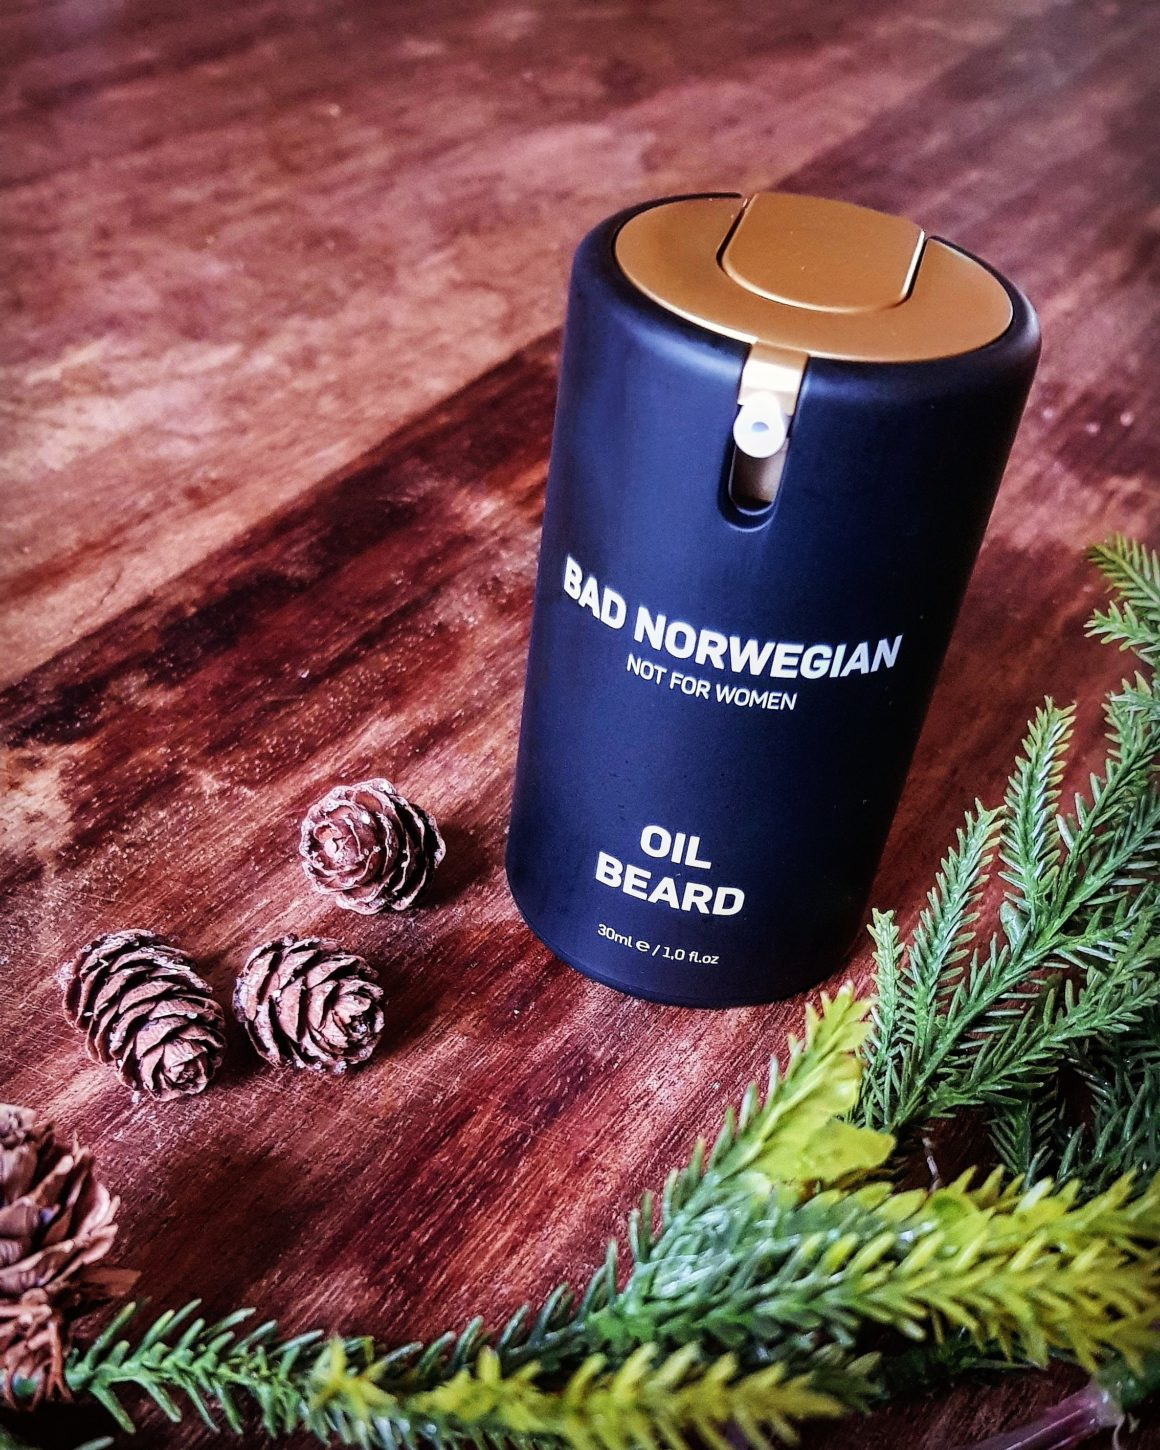 Revamp your regime with BAD NORWEGIAN this advent OIL BEARD